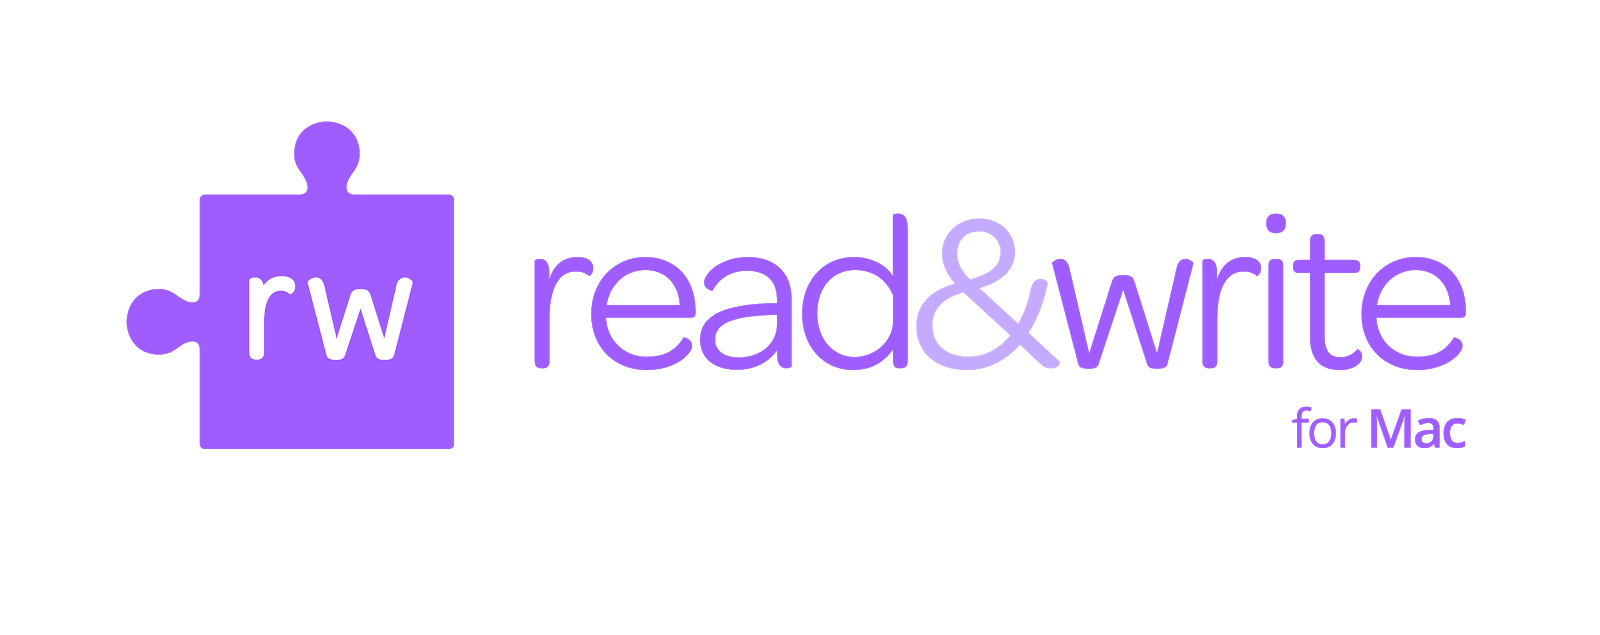 Read&Write for Mac